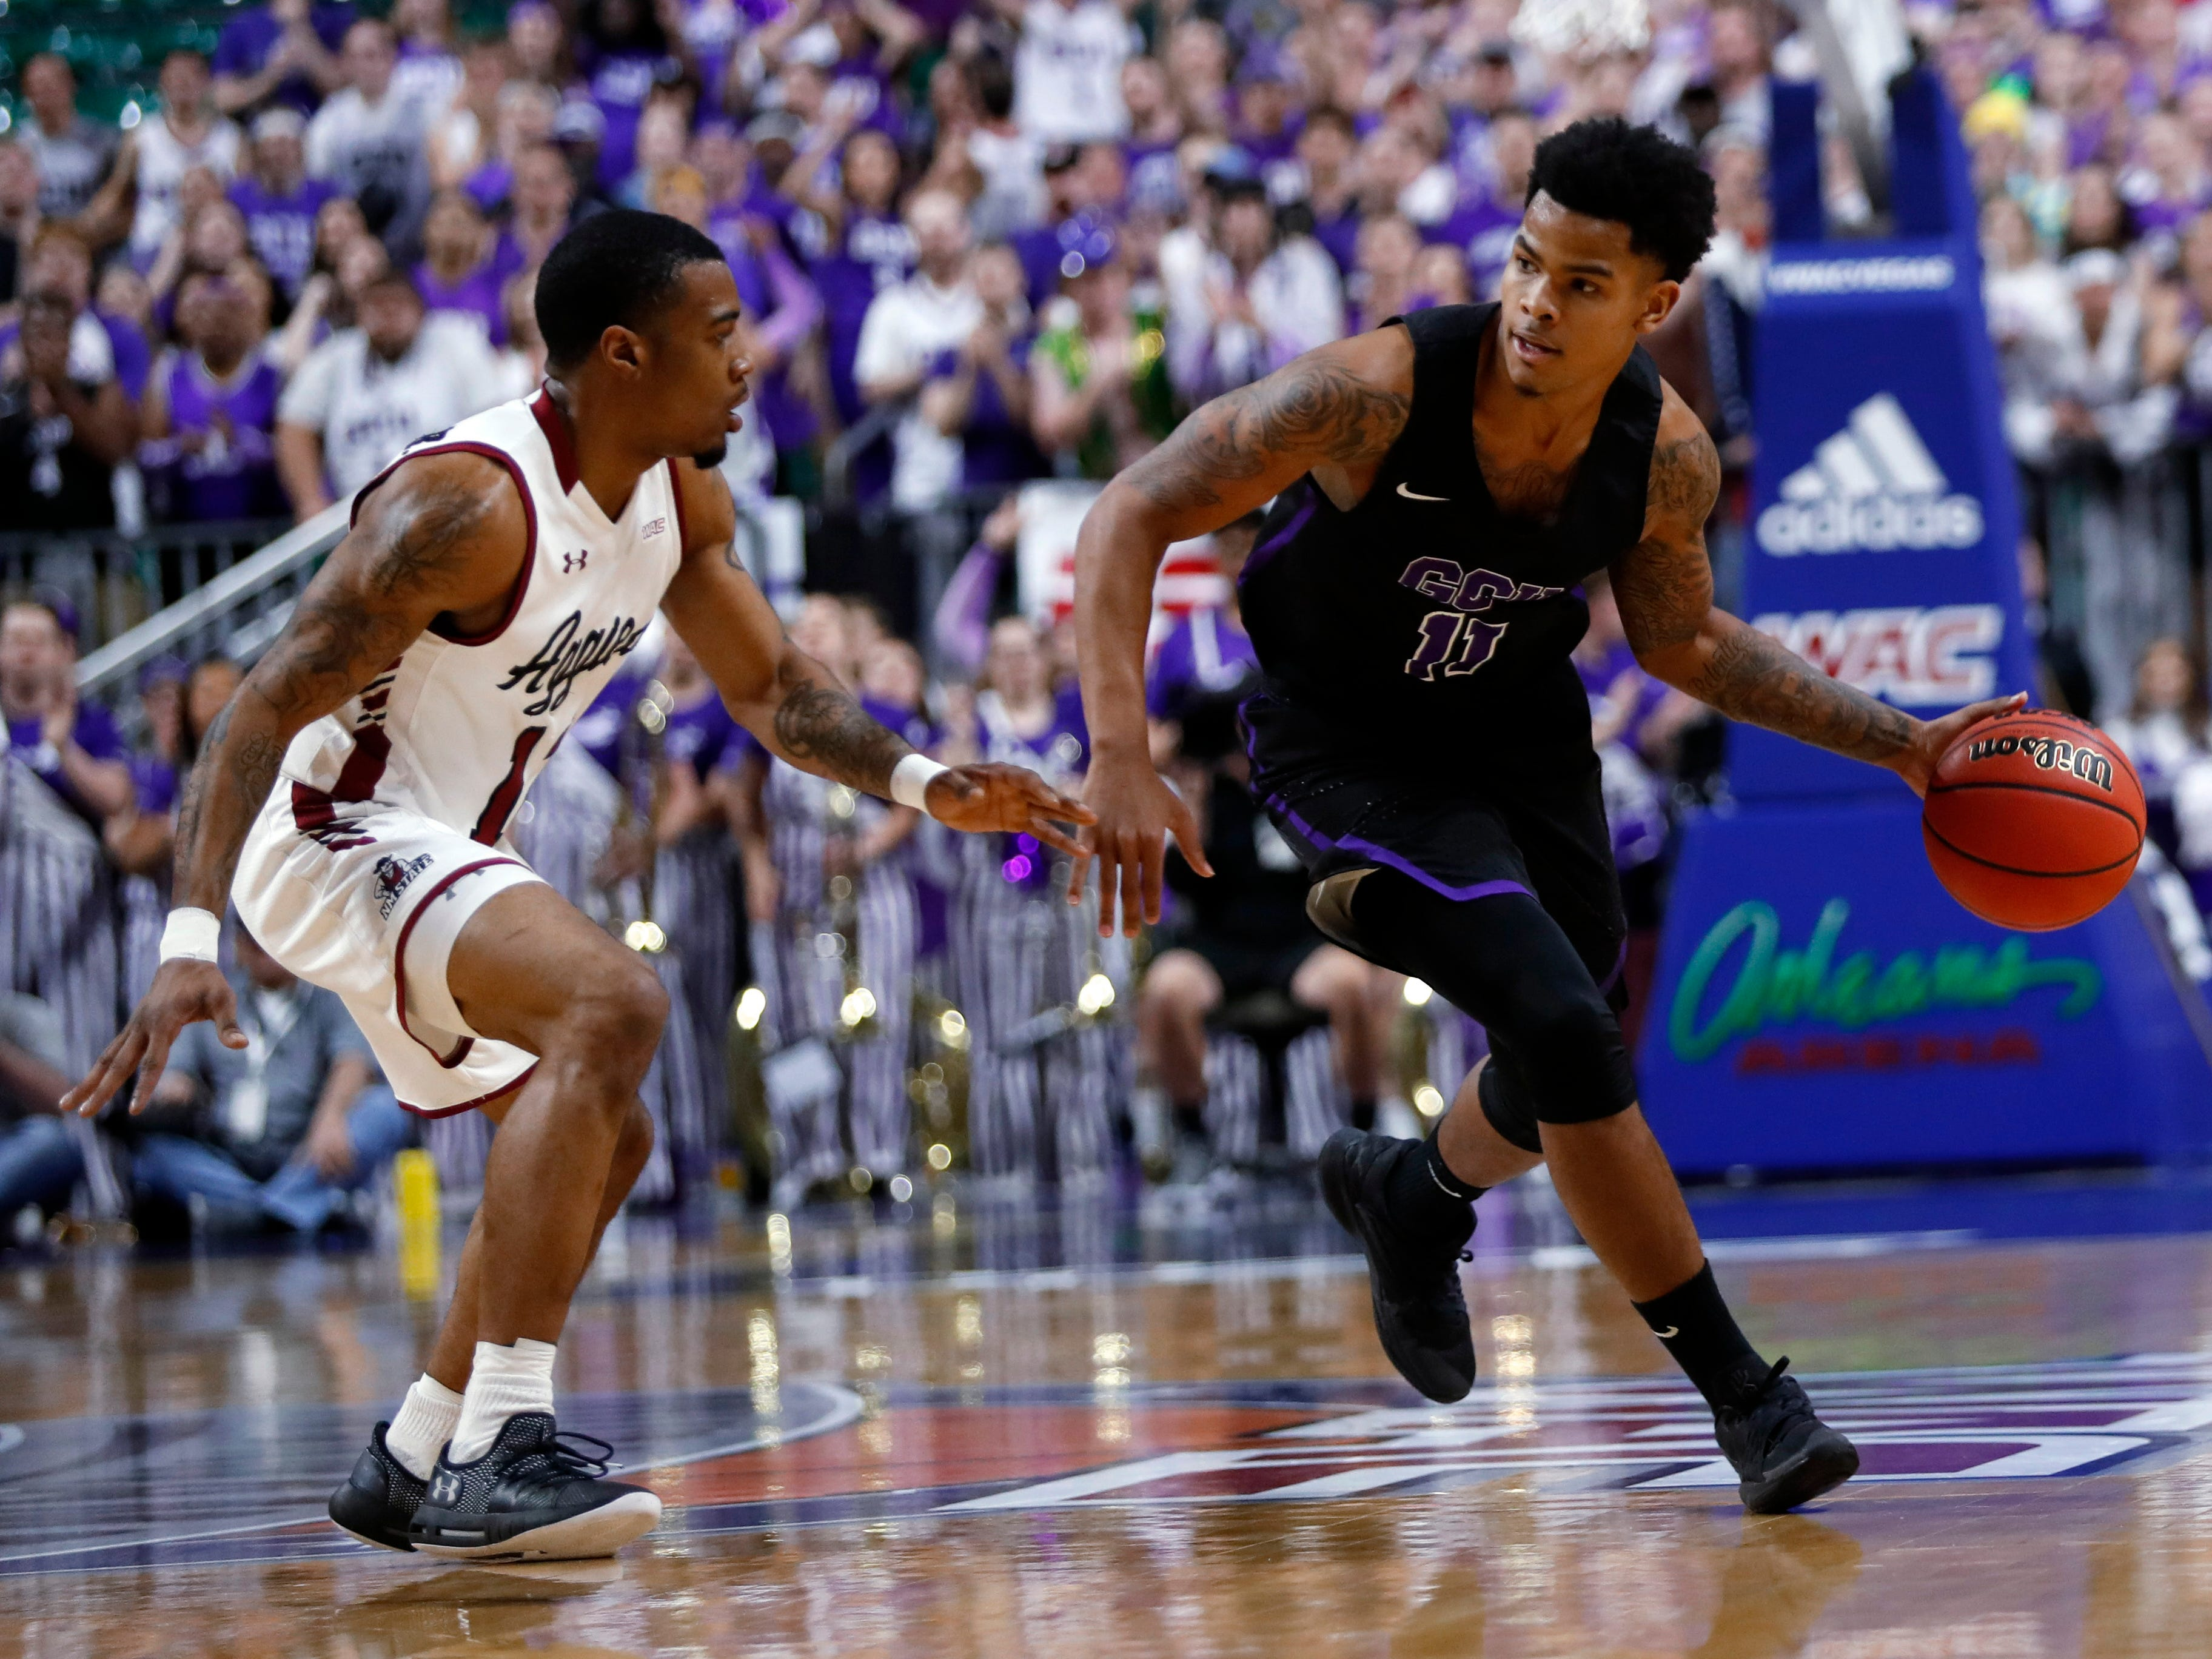 Grand Canyon's Damari Mislead (11) drives by New Mexico State guard AJ Harris (12) during the first half of an NCAA college basketball game for the Western Athletic Conference men's tournament championship Saturday, March 16, 2019, in Las Vegas.